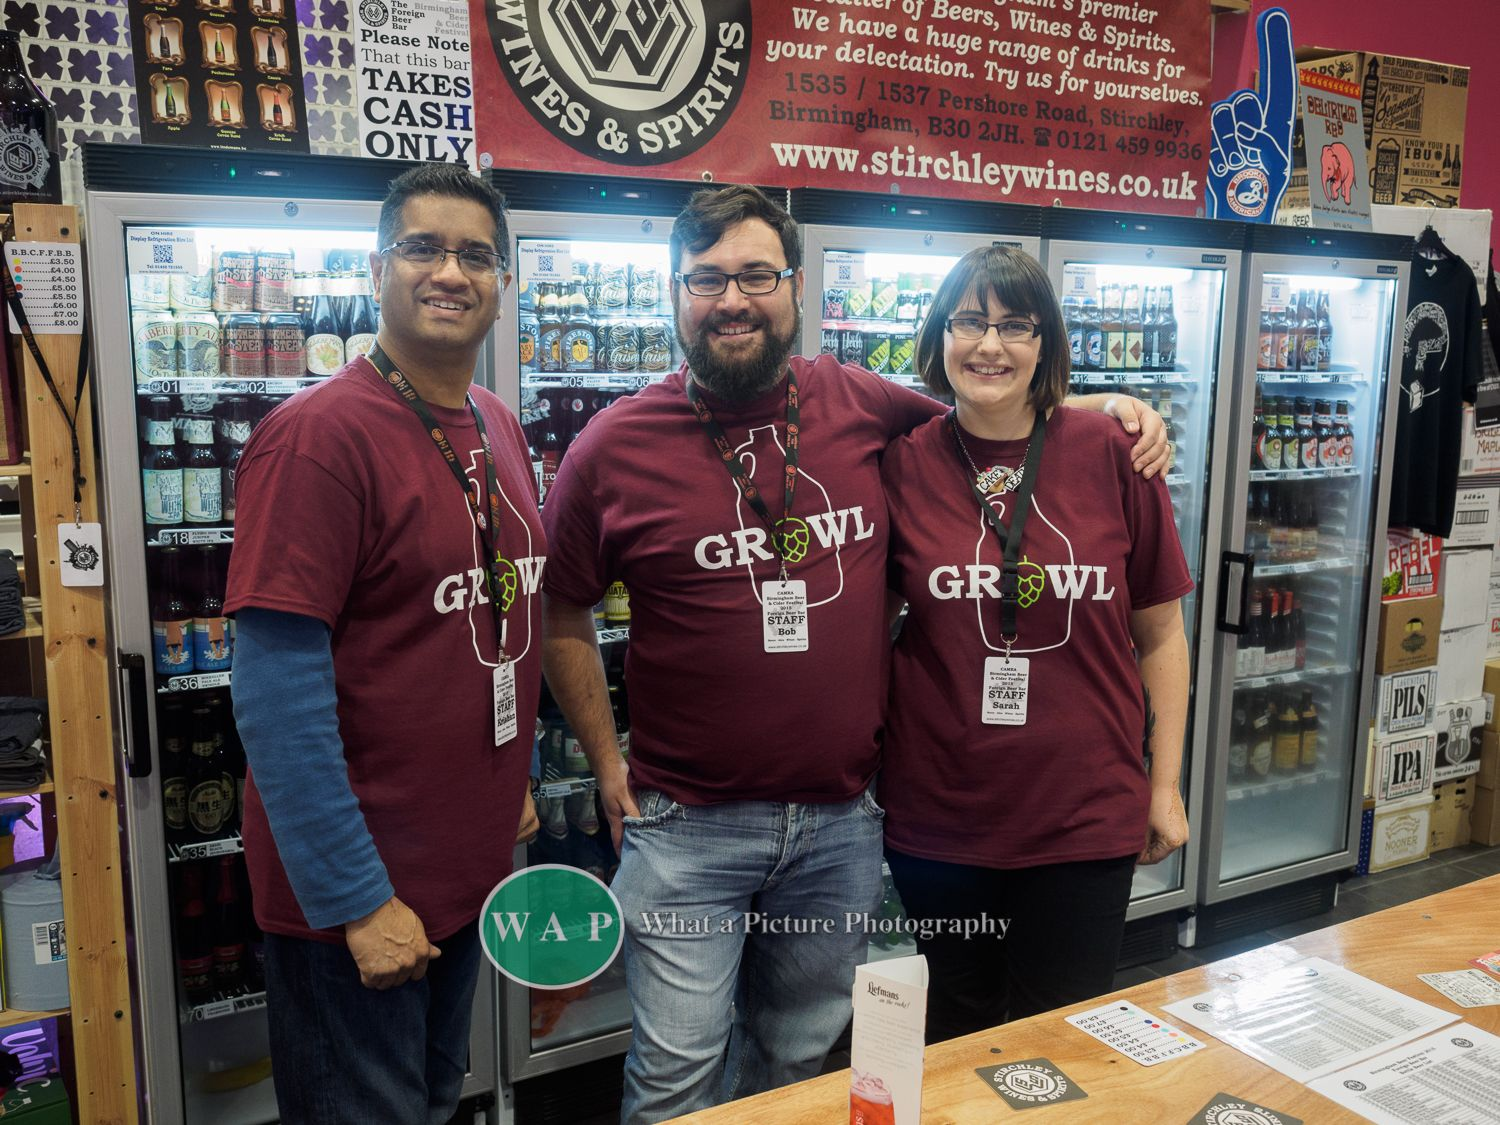 The Stirchley Wines Team at Birmingham Beer and Cider Festival 2015